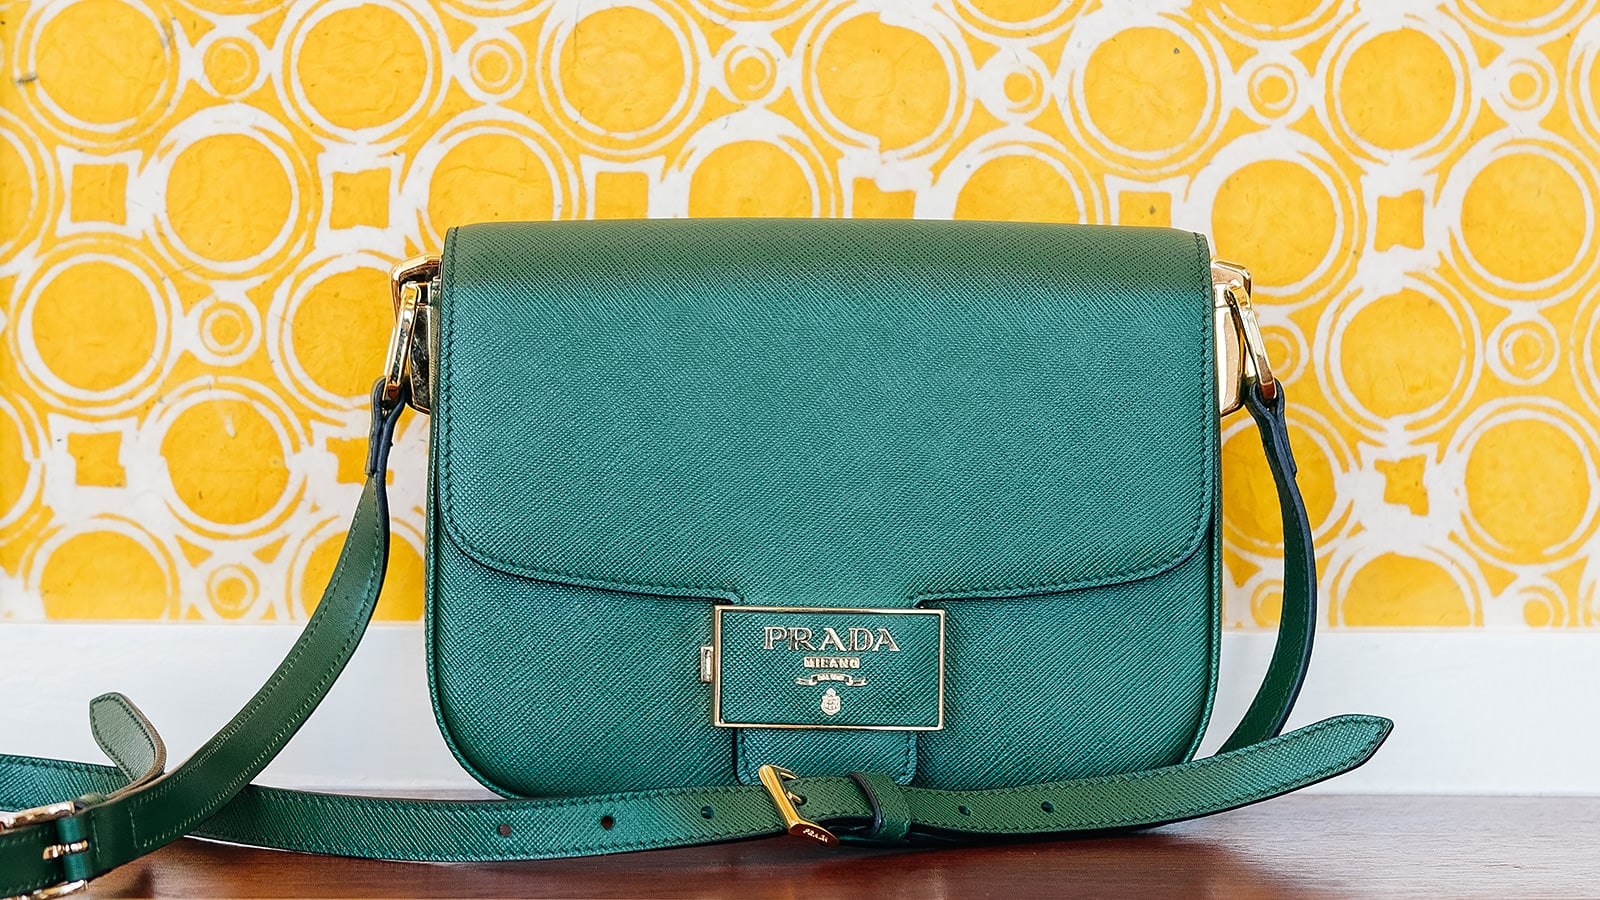 Sophisticated, Timeless, and Pretty: Introducing the Prada Emblème Bag